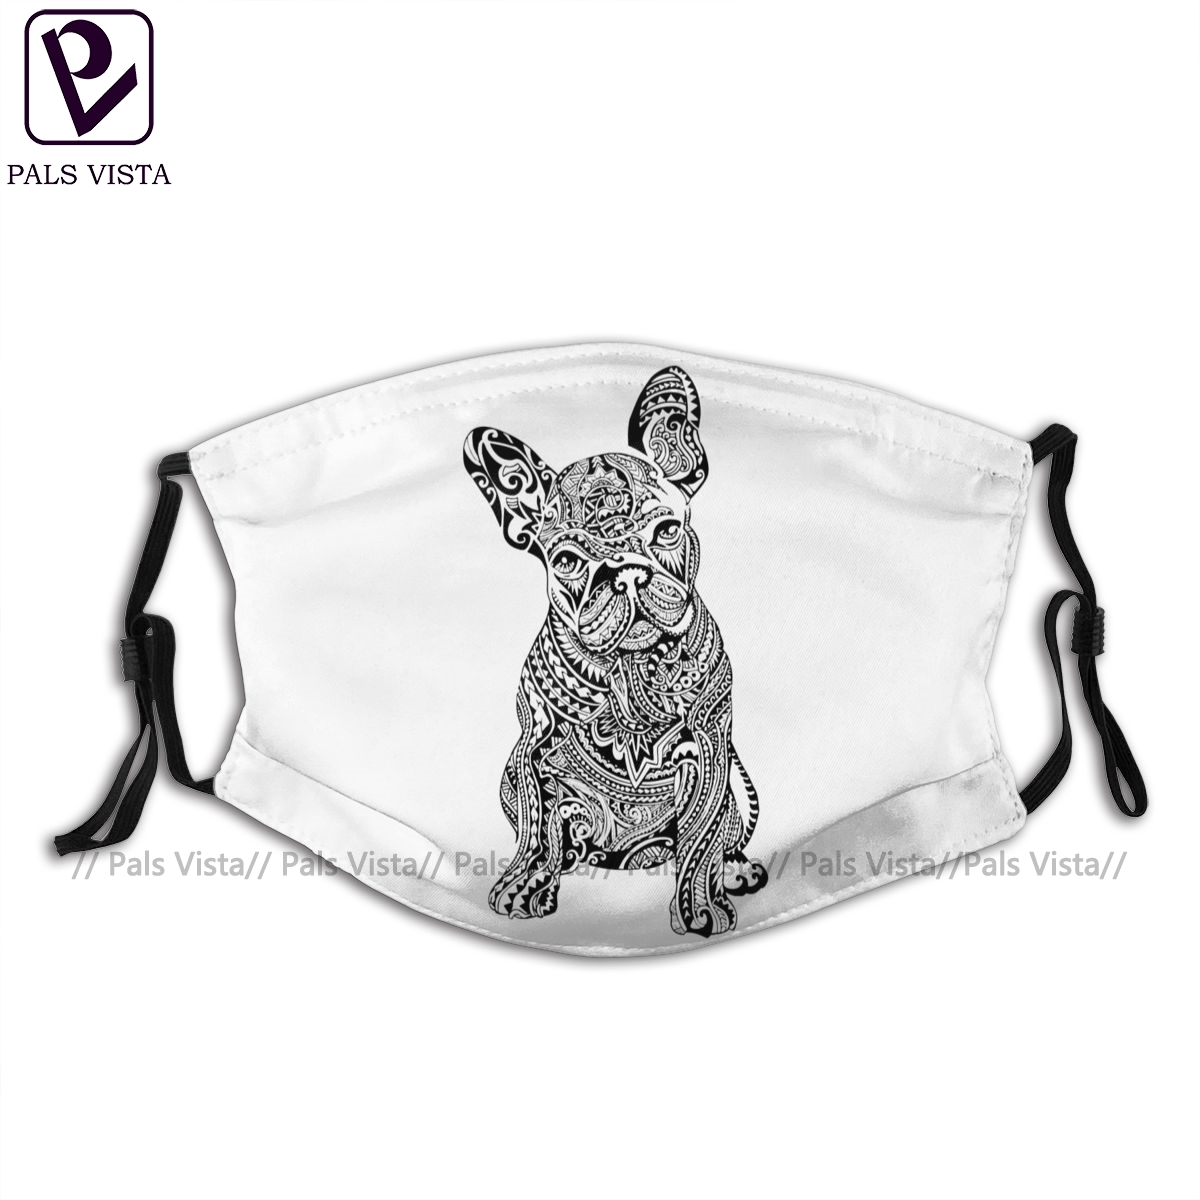 French Bulldog Mouth Face Mask Polynesian French Bulldog Facial Mask Cool Fashion With 2 Filters For Adult